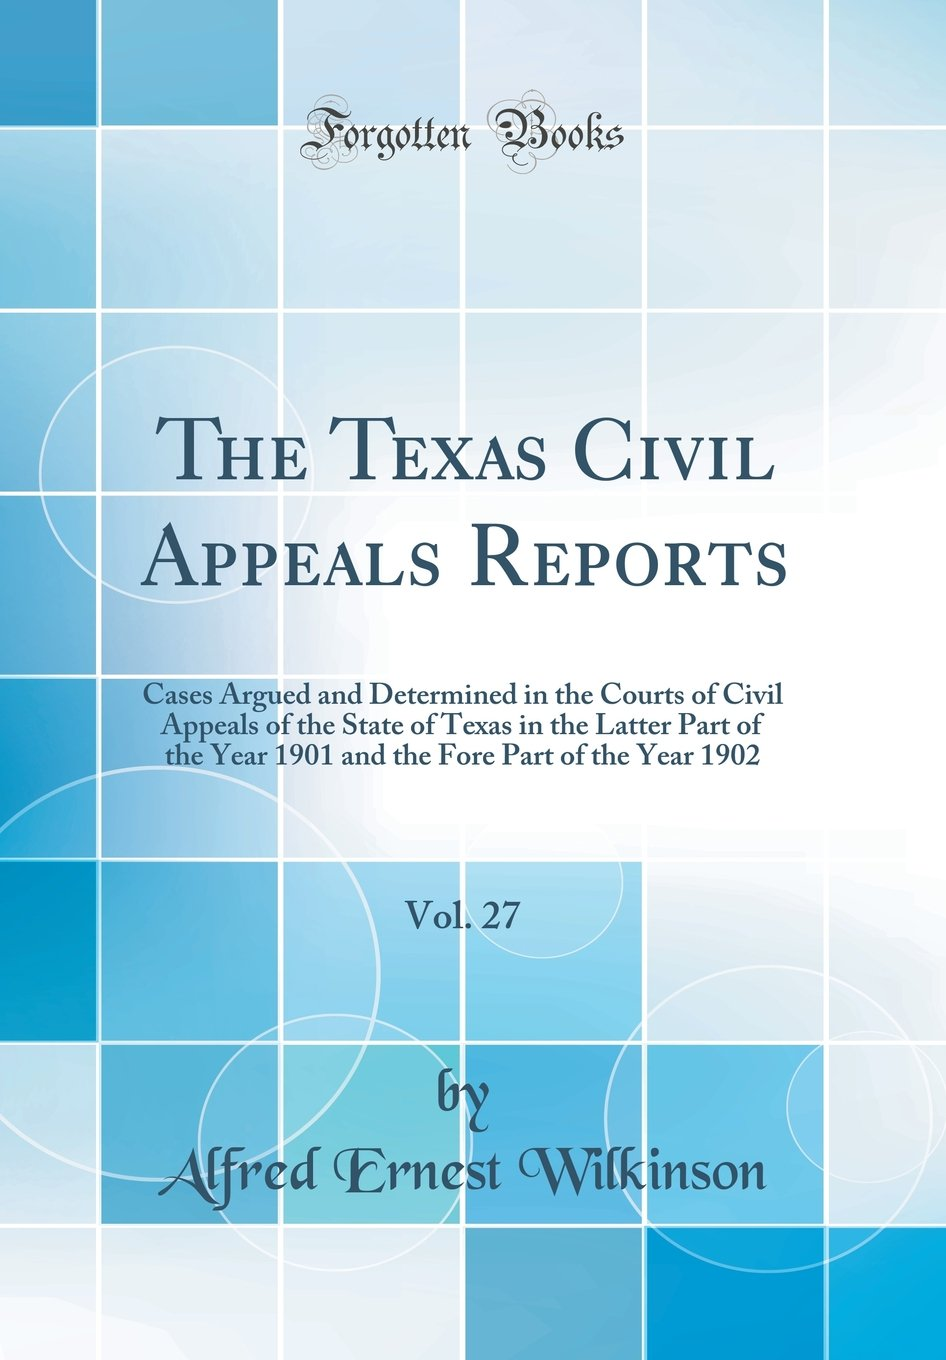 Download The Texas Civil Appeals Reports, Vol. 27: Cases Argued and Determined in the Courts of Civil Appeals of the State of Texas in the Latter Part of the ... Fore Part of the Year 1902 (Classic Reprint) PDF